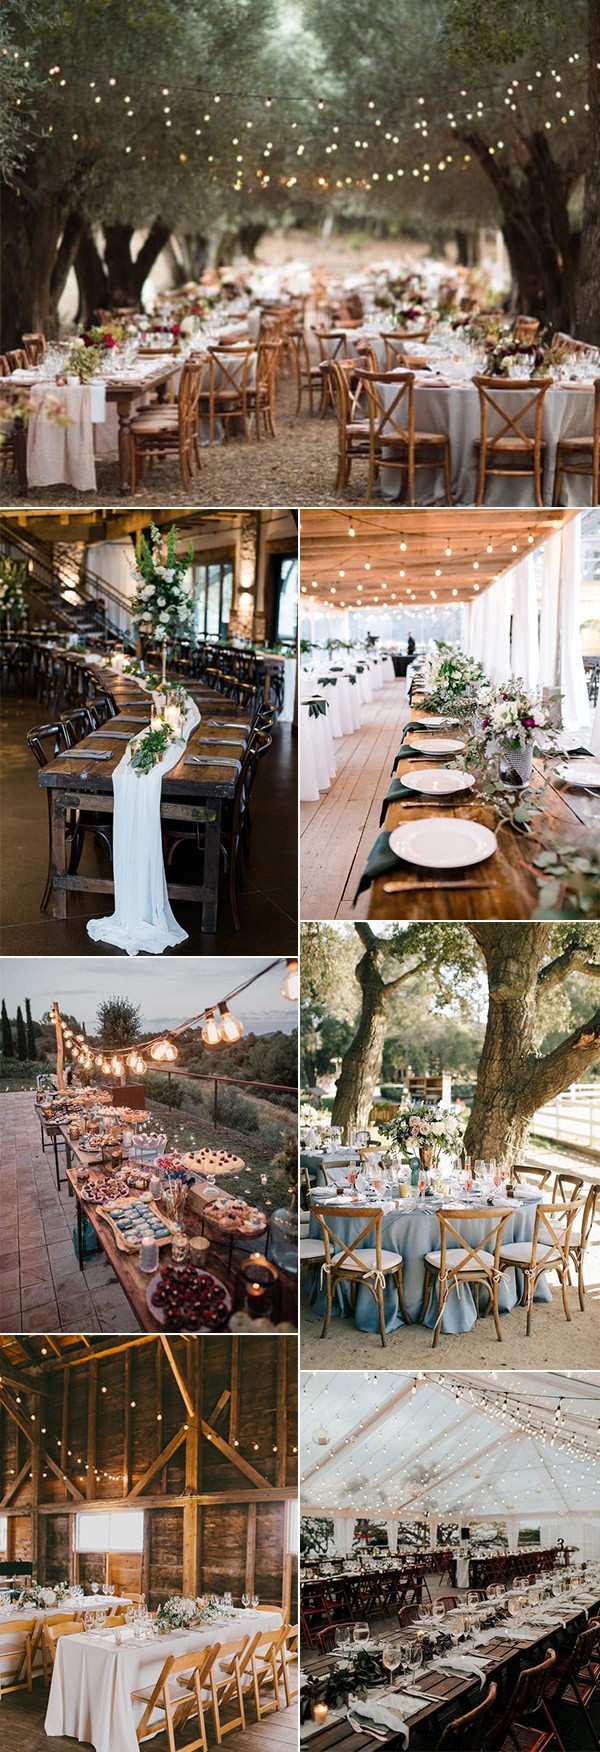 20 Country Rustic Wedding Reception Ideas For Your Day